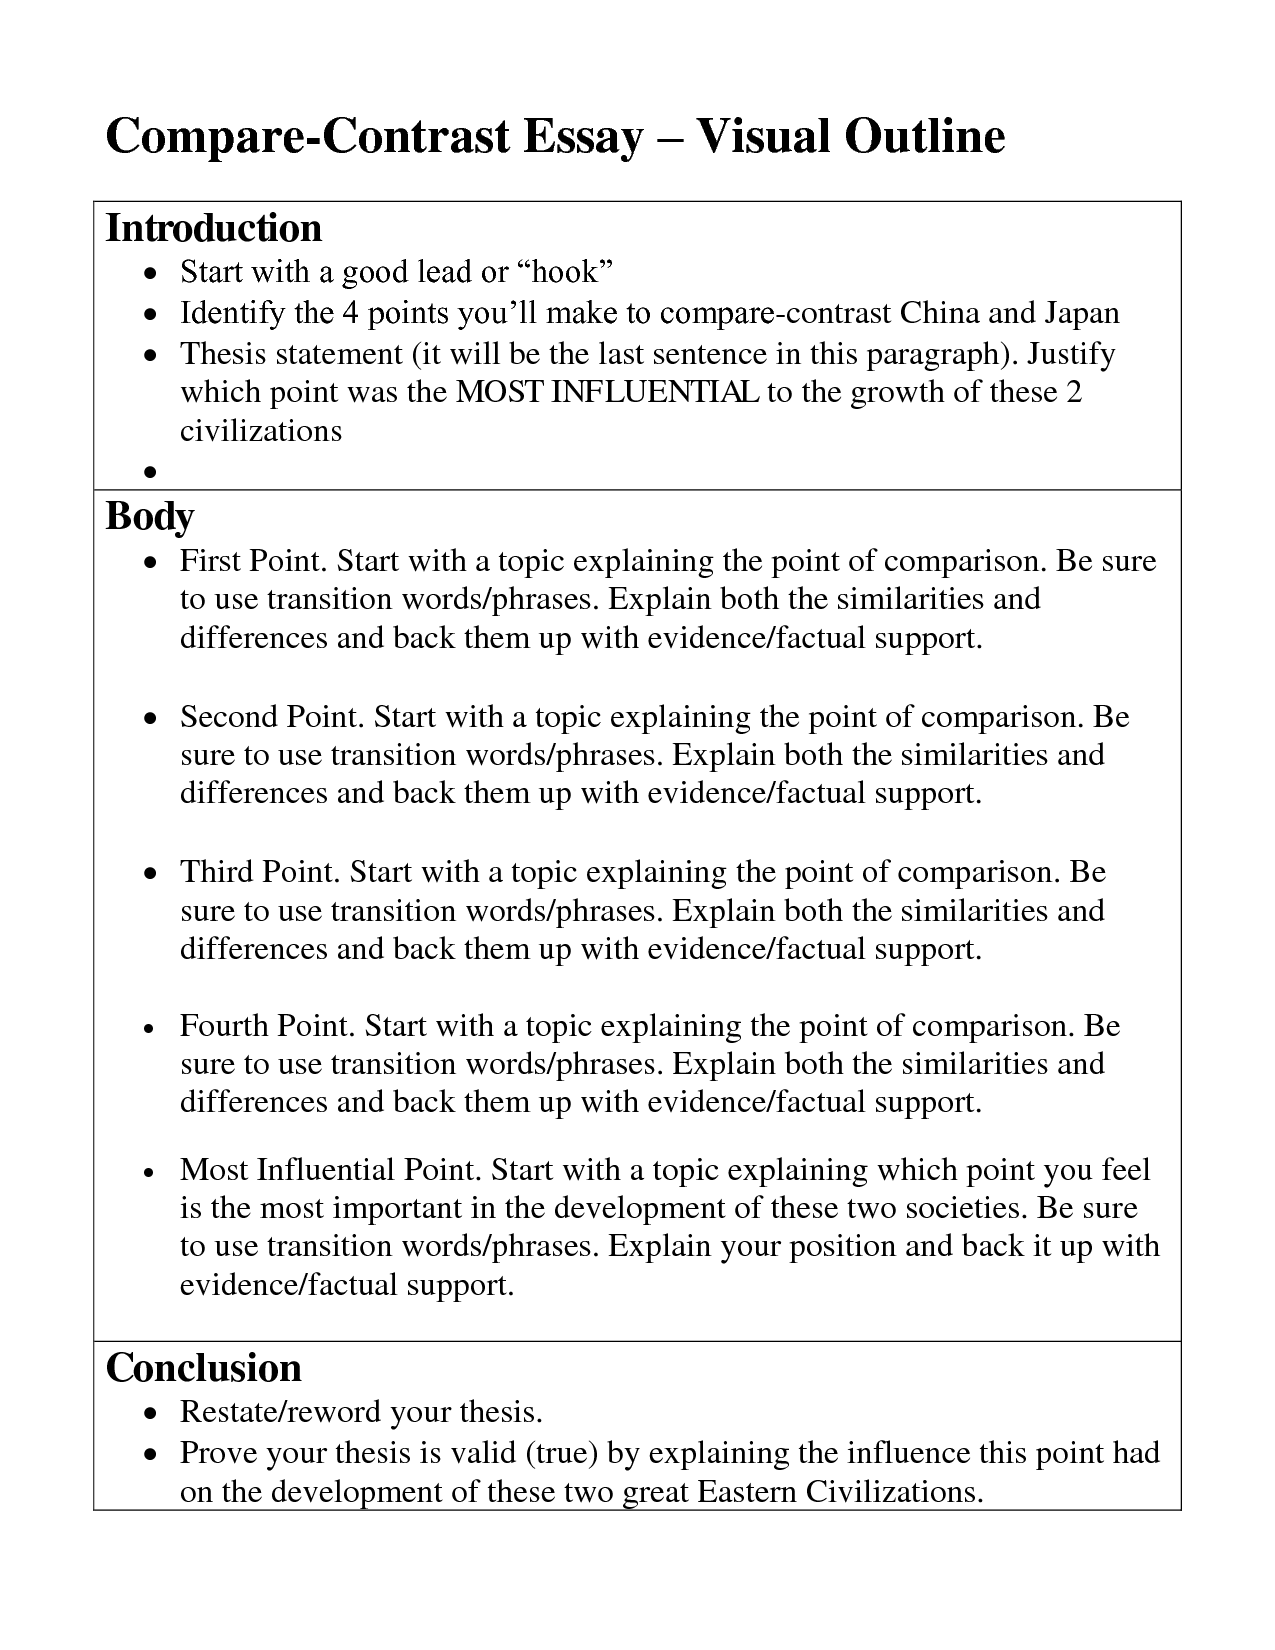 005 Comparison And Contrast Essays Frightening Essay Examples Free Compare Pdf College Full